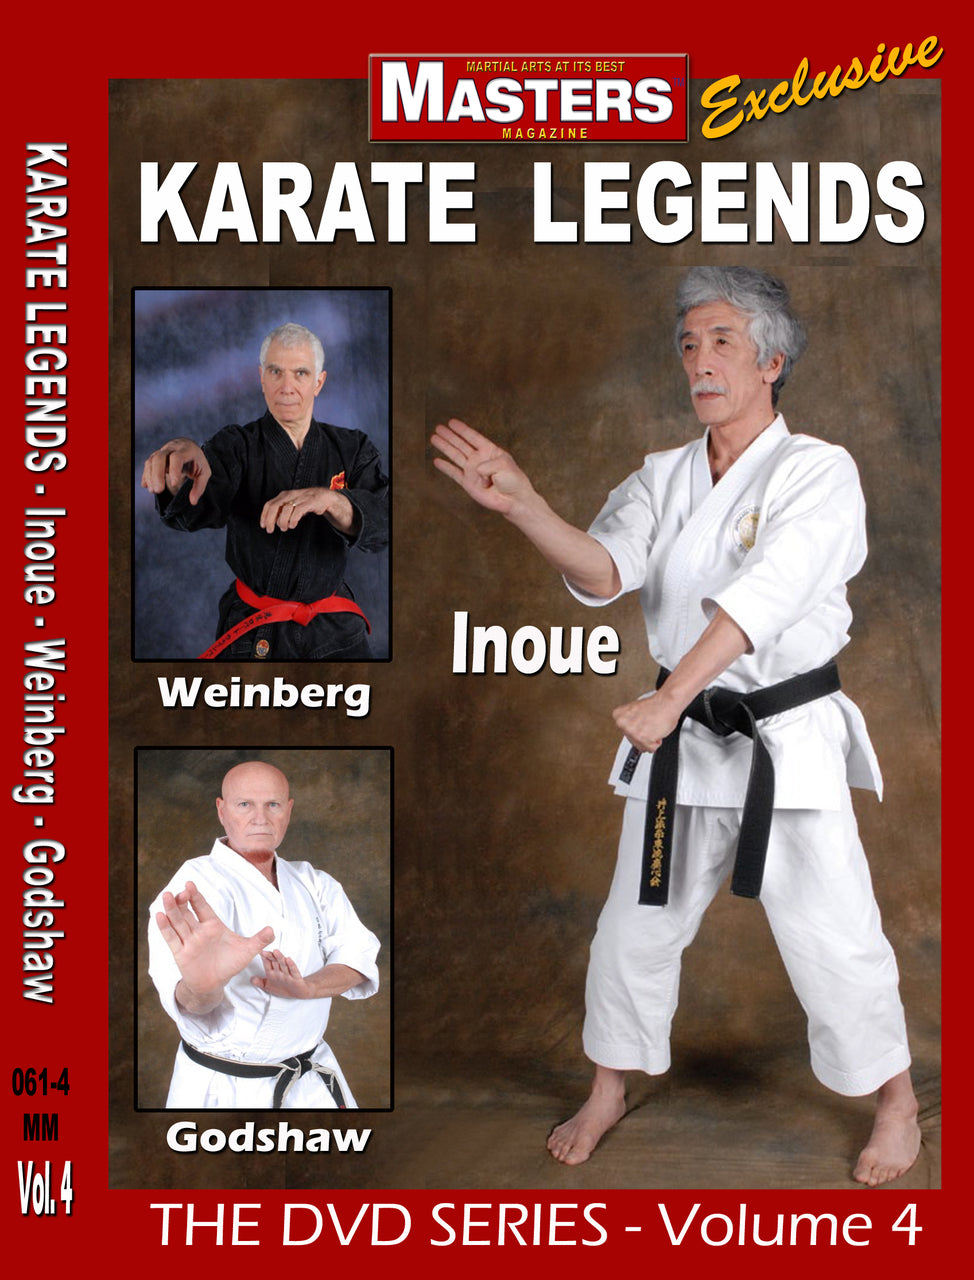 Karate Legends DVD 4 with Weinberg, Godshaw & Inoue